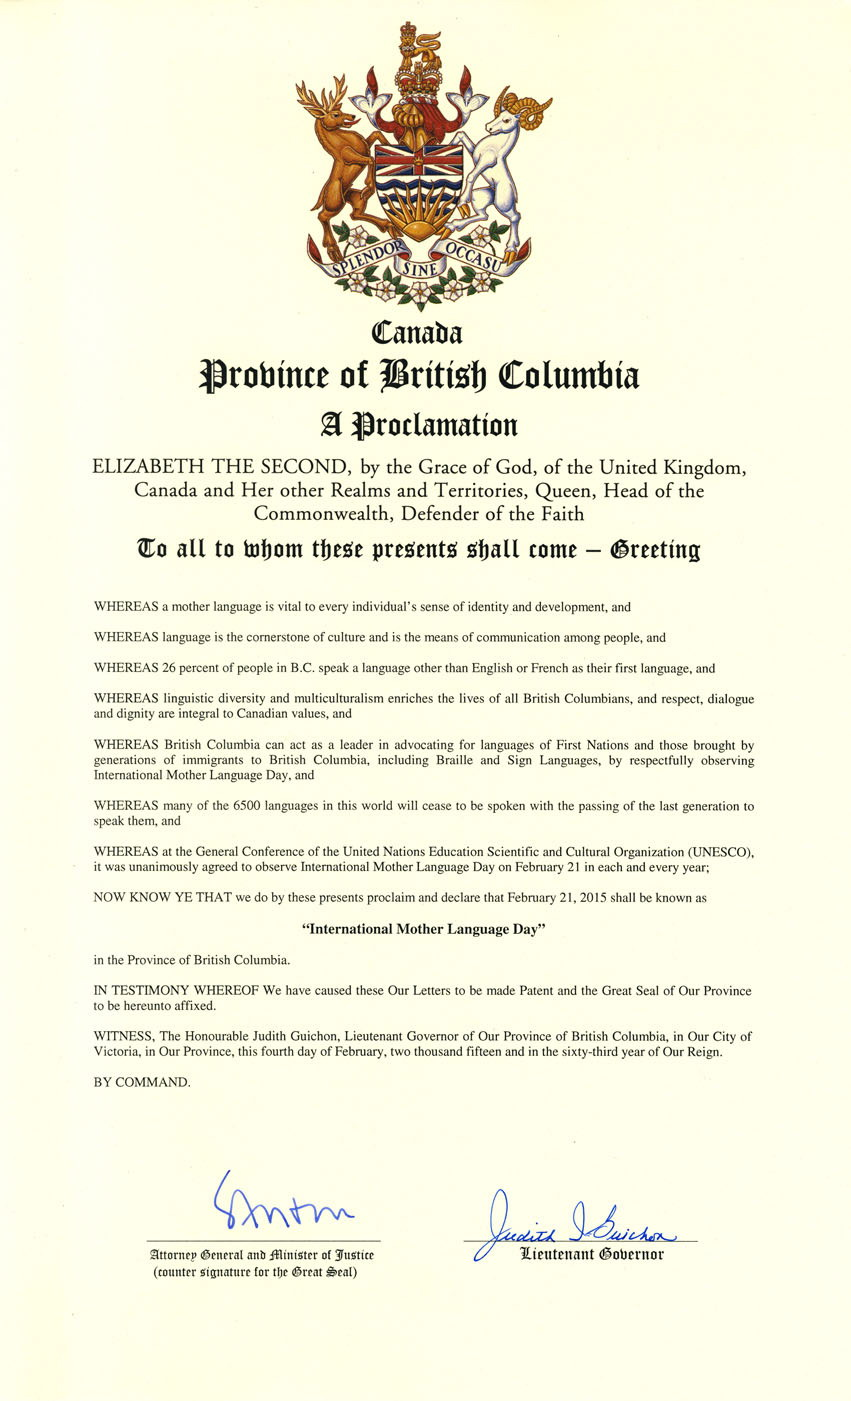 British Columbia proclamation for International Mother Language Day, 2015.